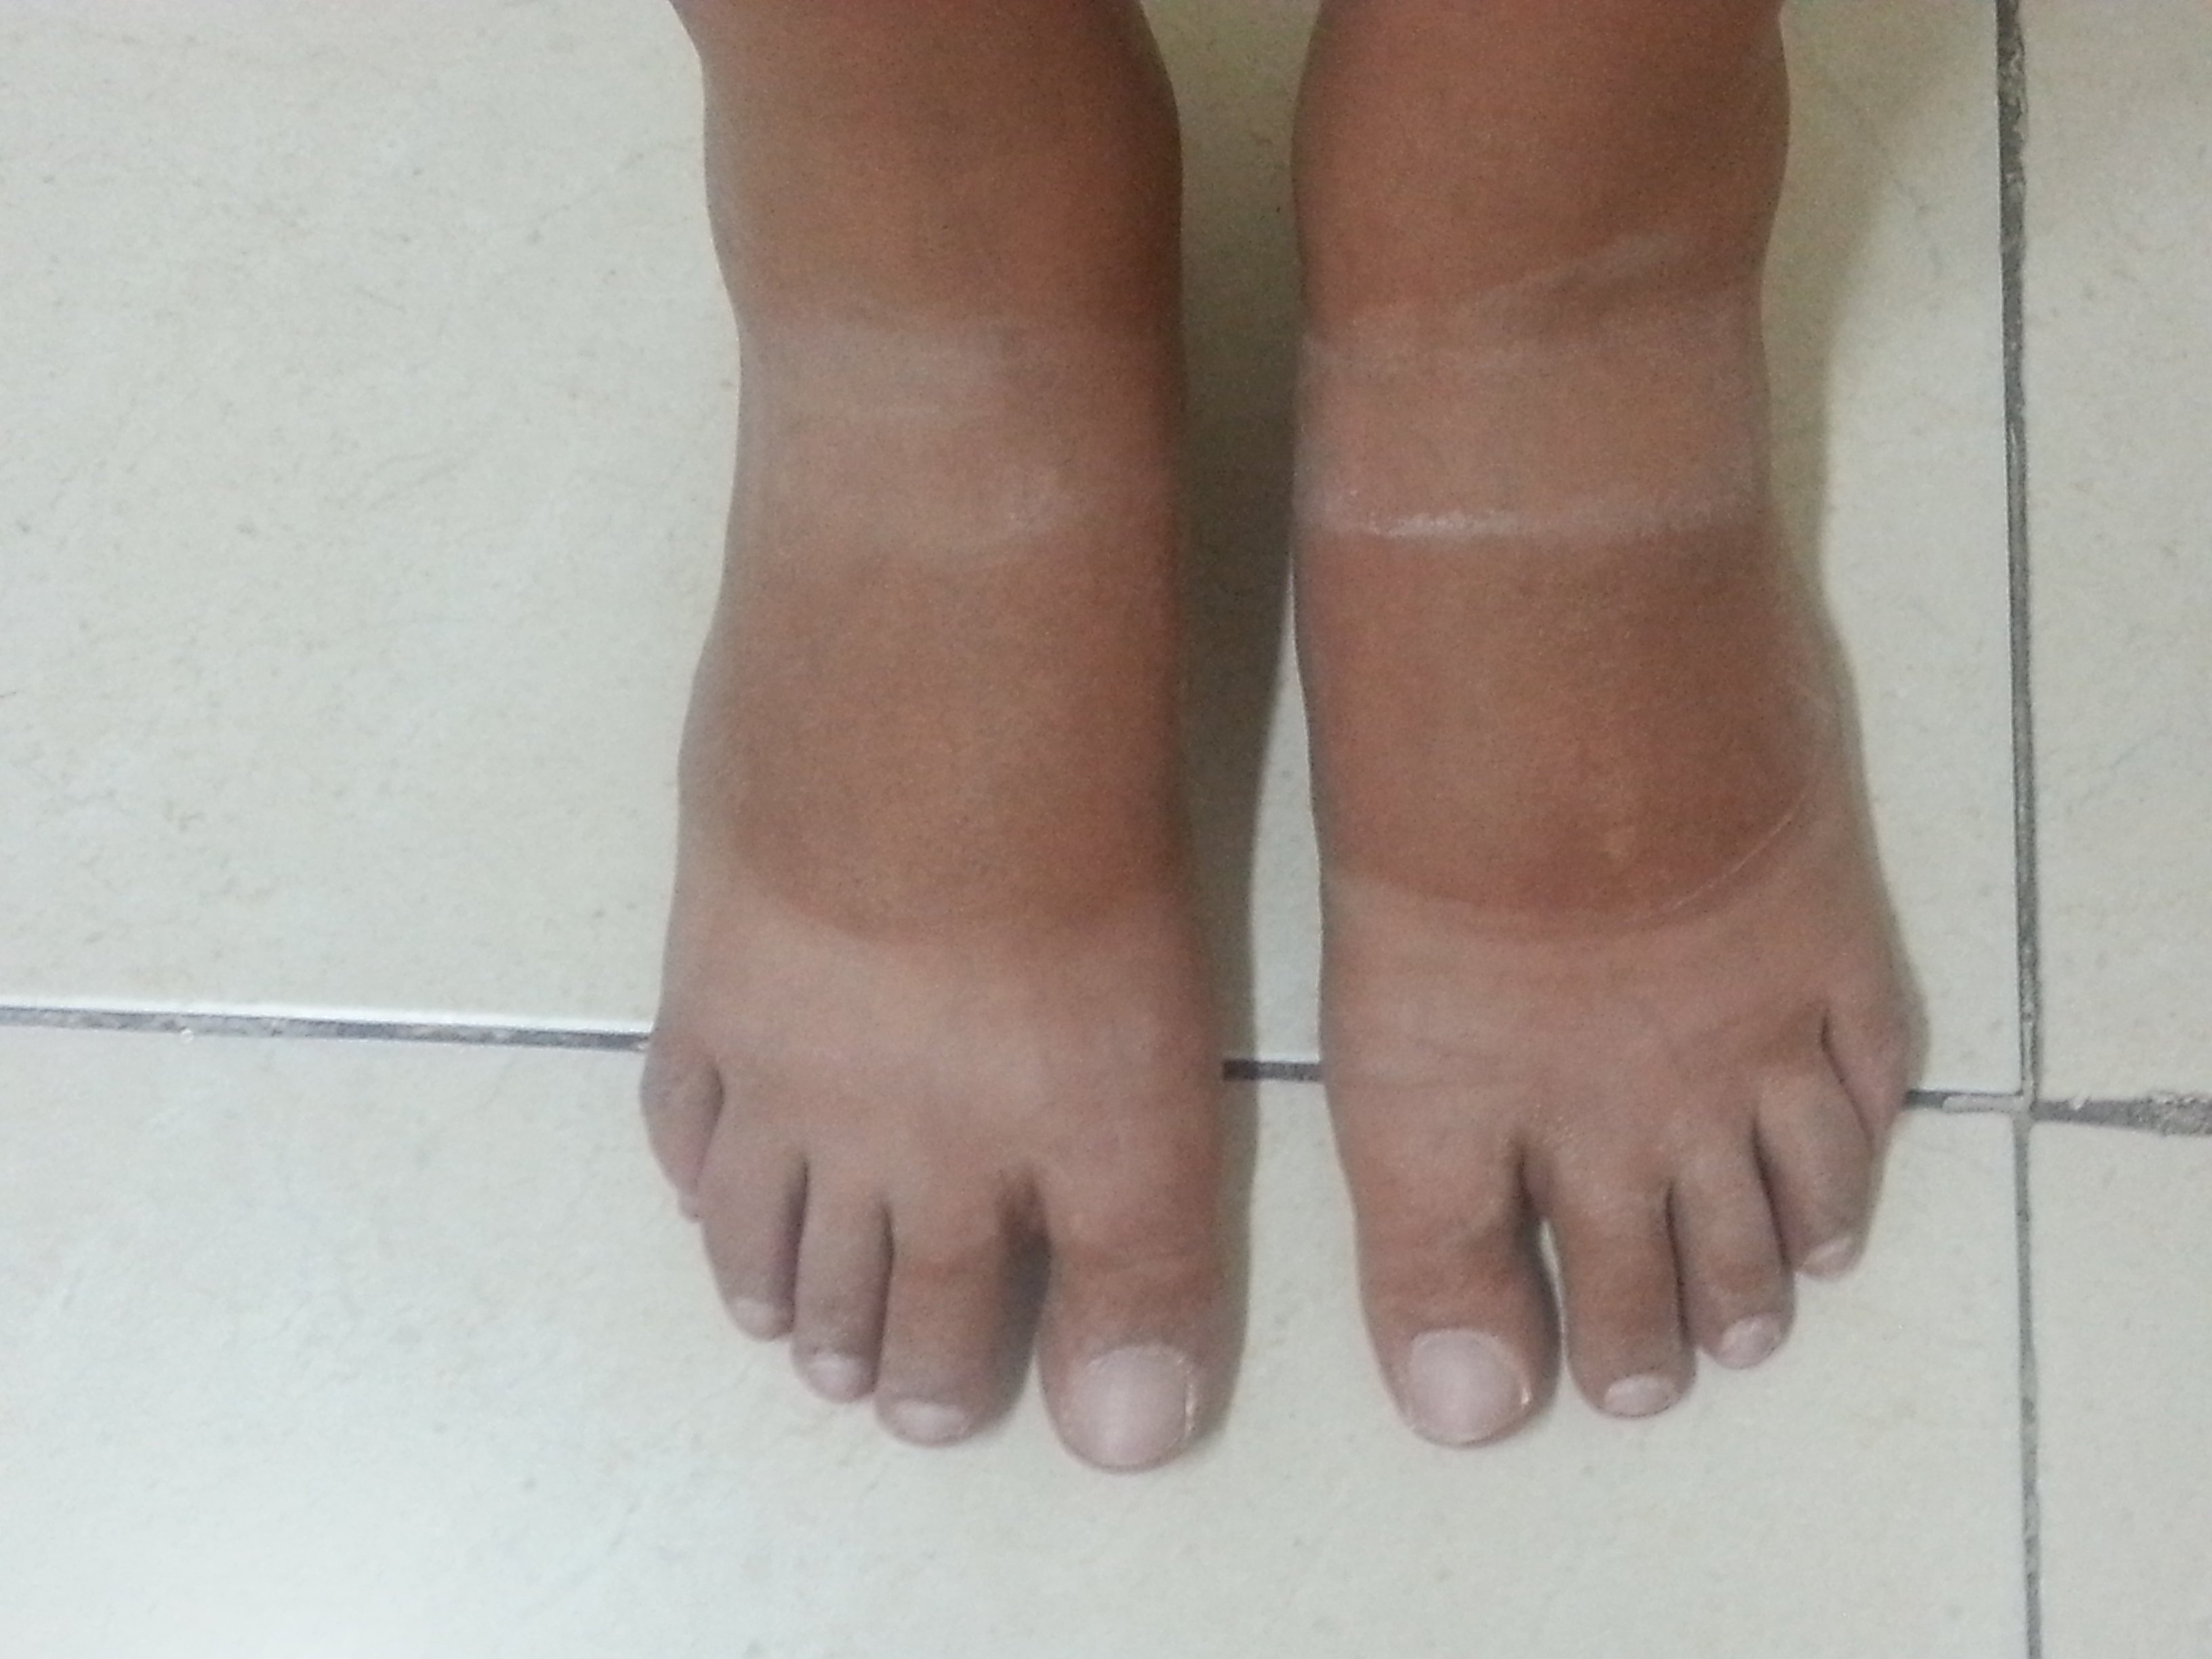 Unsexiest feet in the world